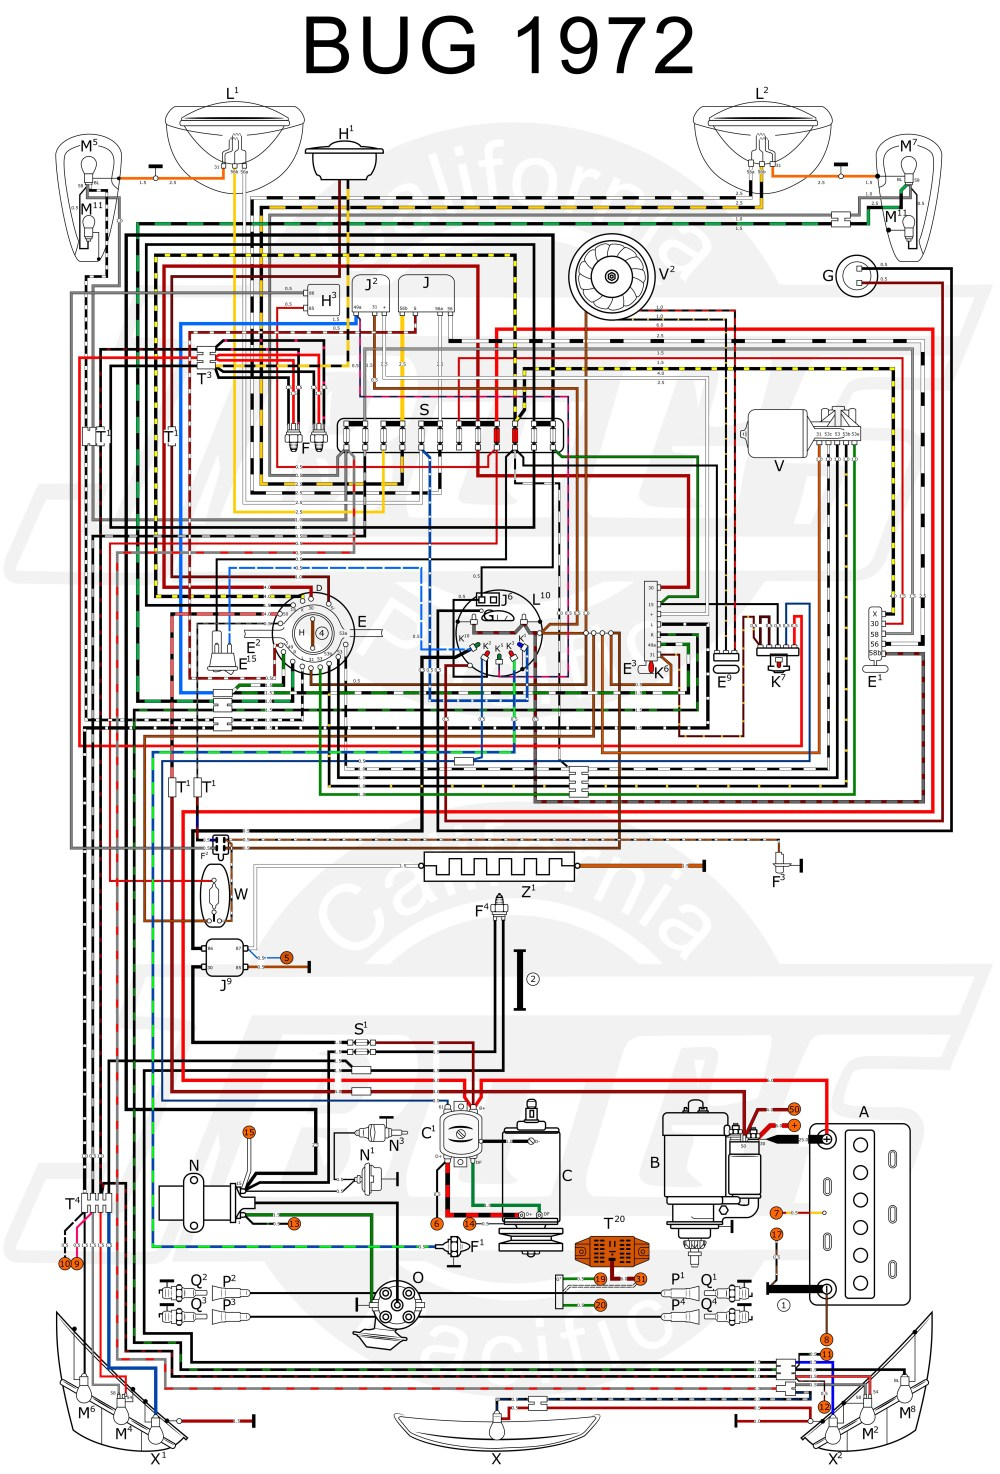 medium resolution of 2001 vw beetle engine diagram 1973 vw beetle wiring diagram wiring diagram of 2001 vw beetle